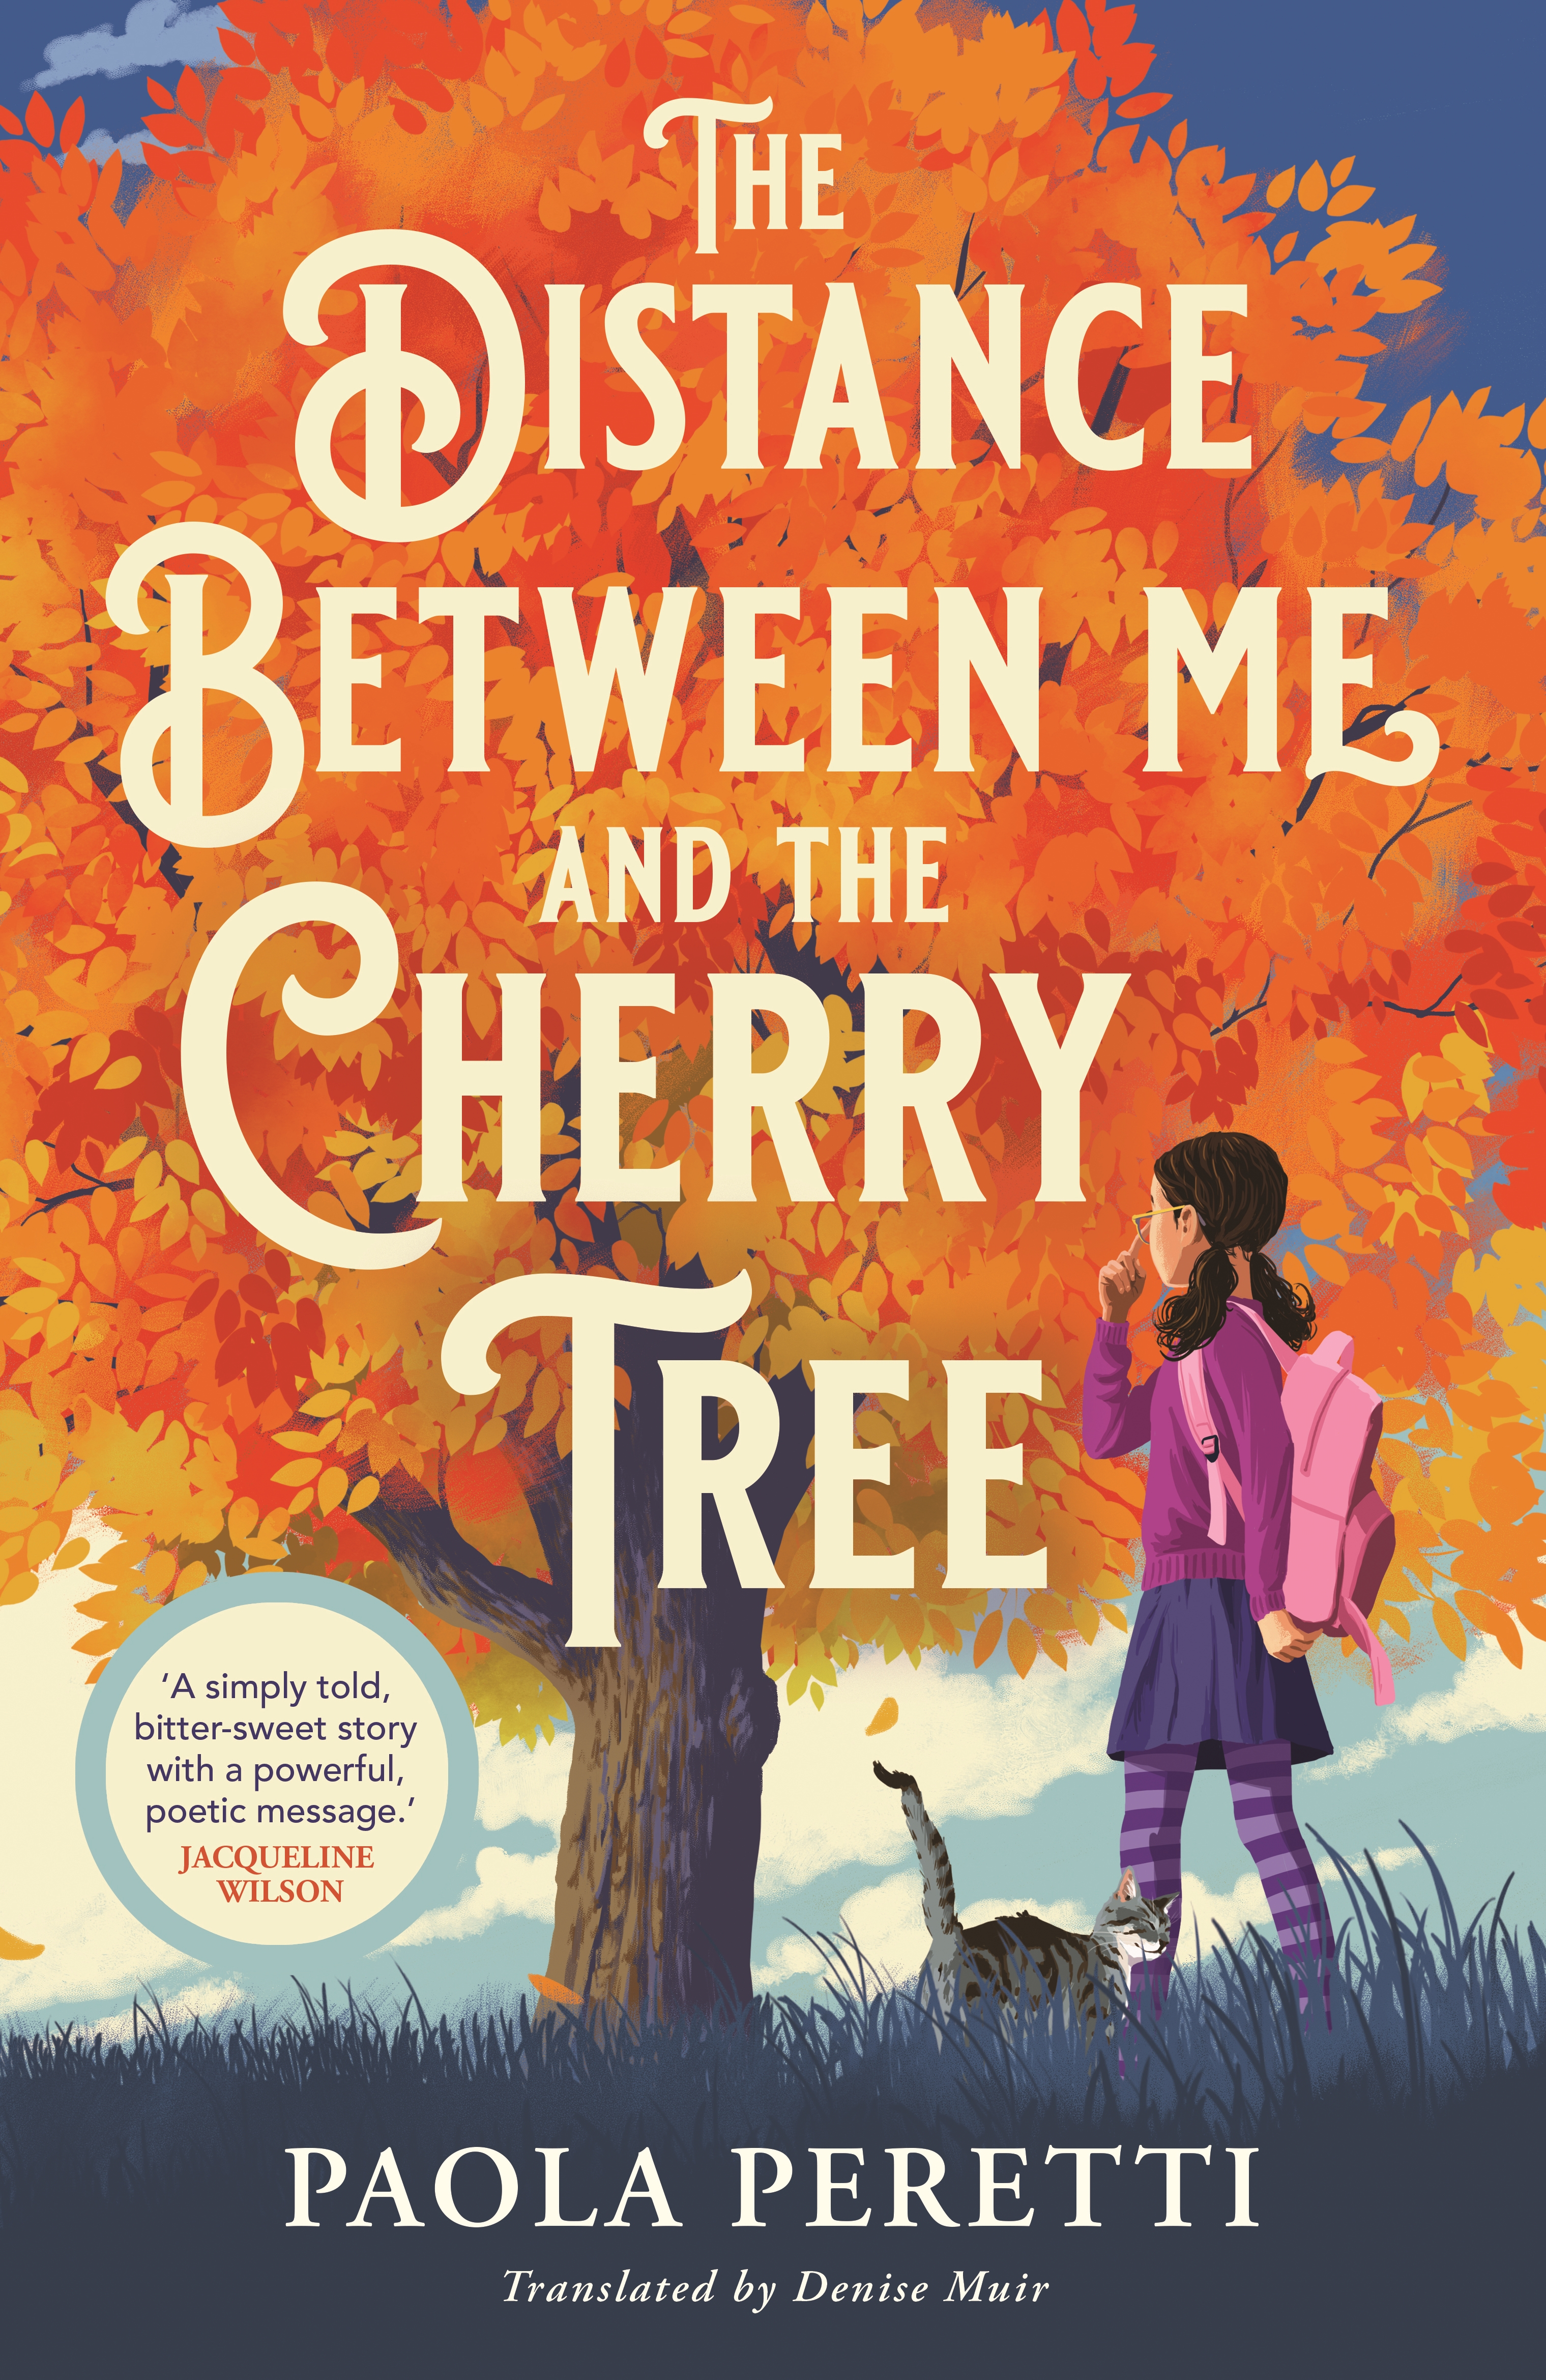 The Distance Between Me and the Cherry Tree by Paola Peretti